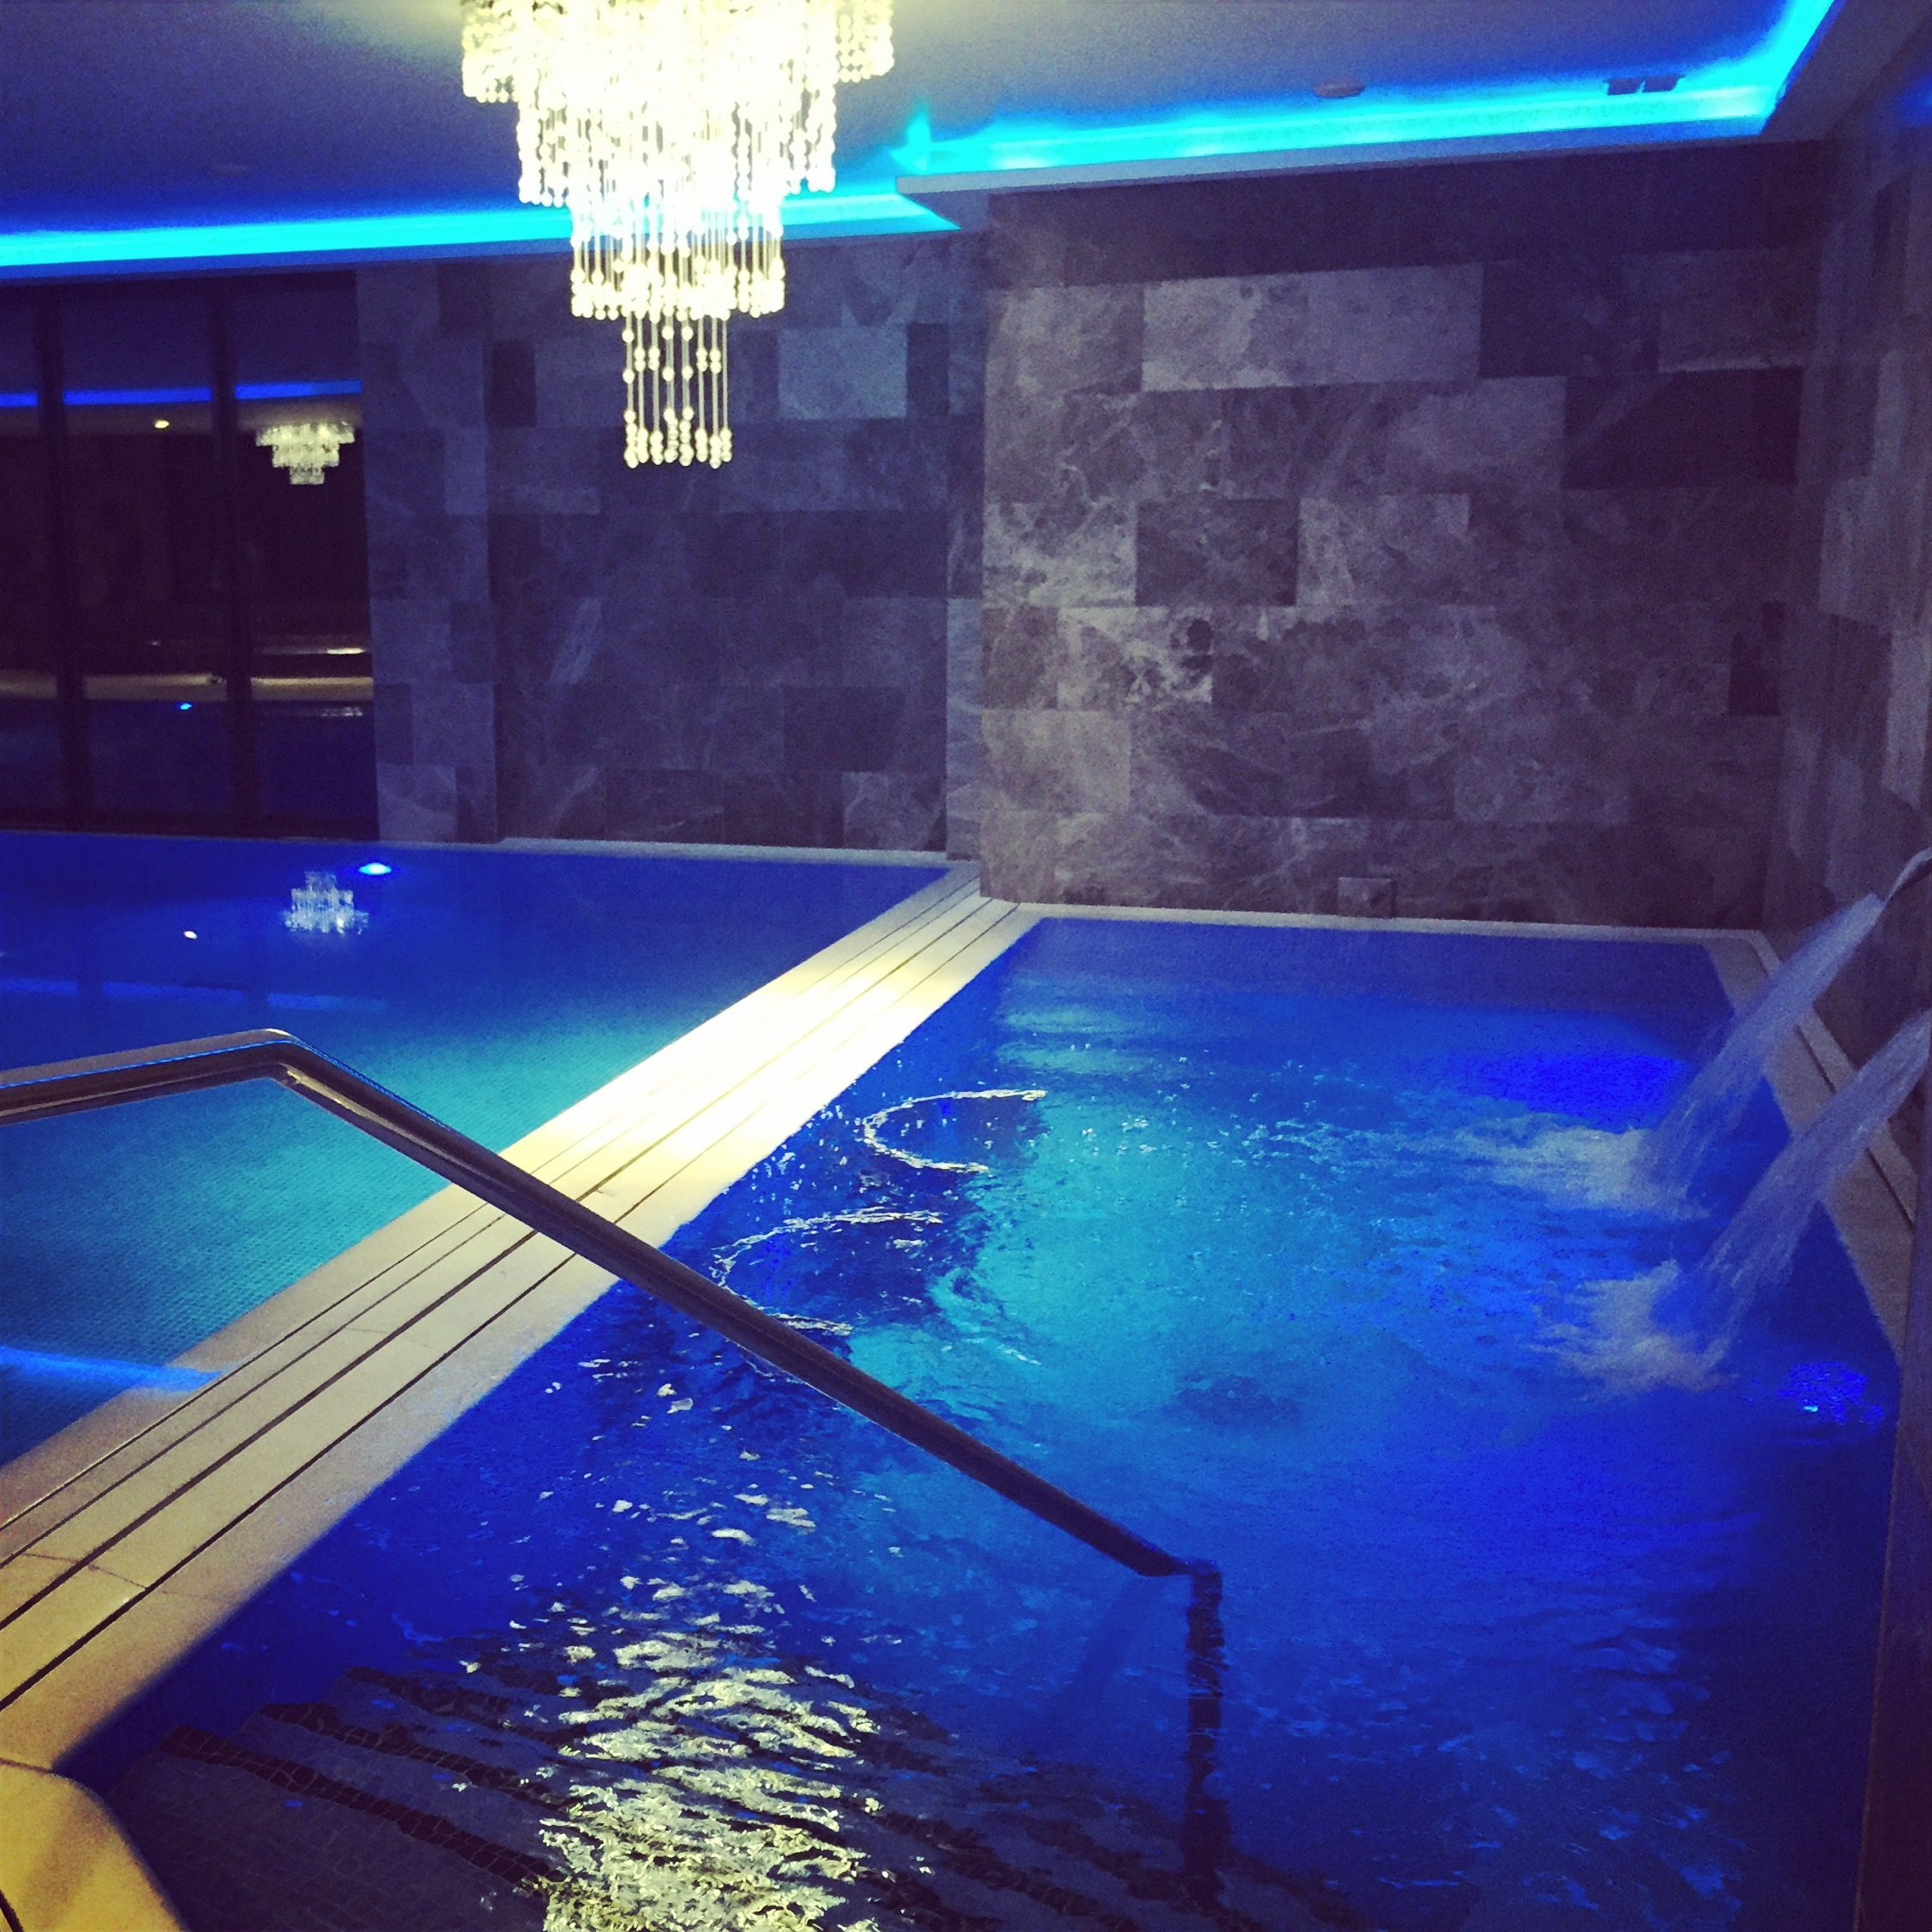 Our Chlorine free pool is open for you to have a look! With stunning views of the countryside and English crystal chandeliers overhead #ReynoldsRetreat #BoroughGreen #Sevenoaks #pool